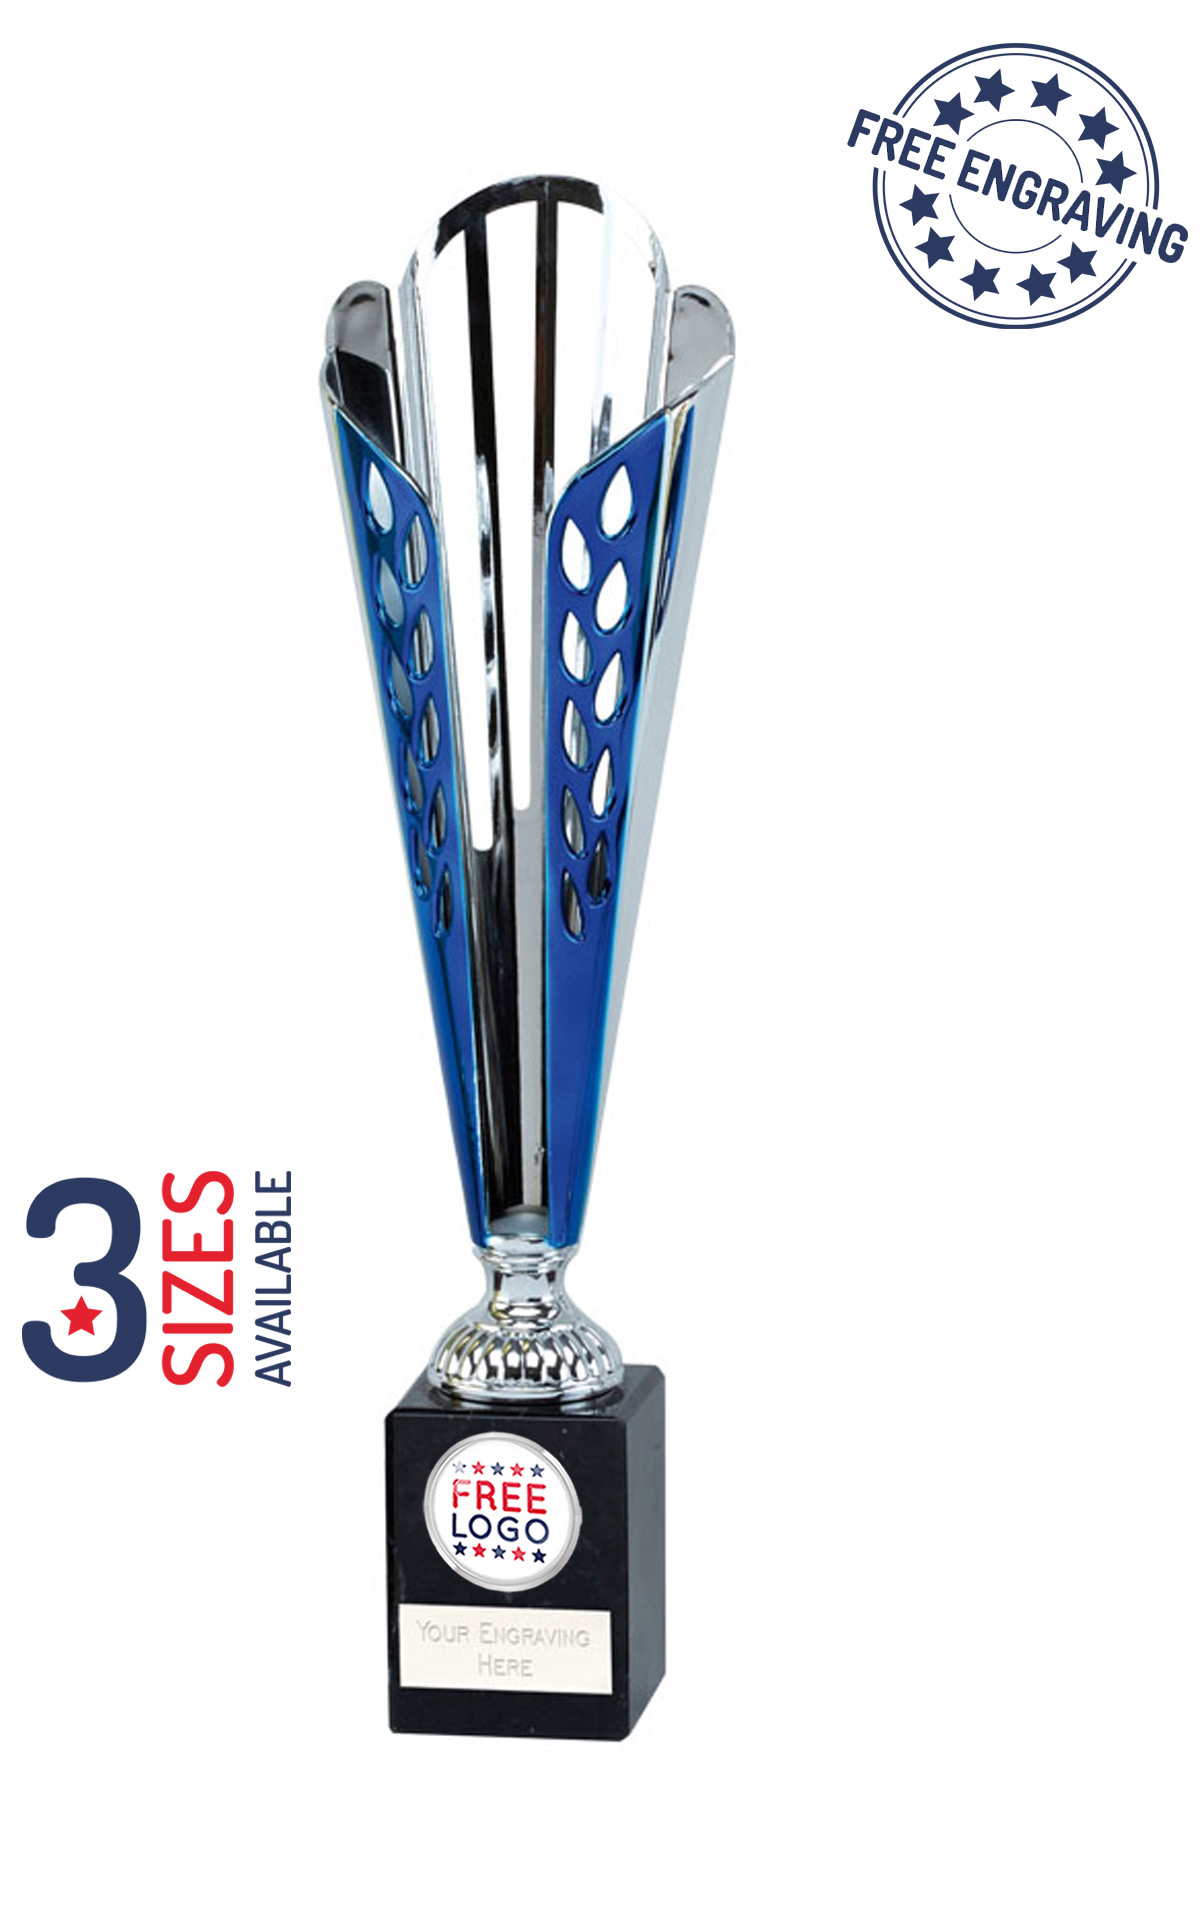 TROPHY CUP AWARD 3 SIZES AVAILABLE ENGRAVED FREE SHIELD SILVER CUPS TROPHIES